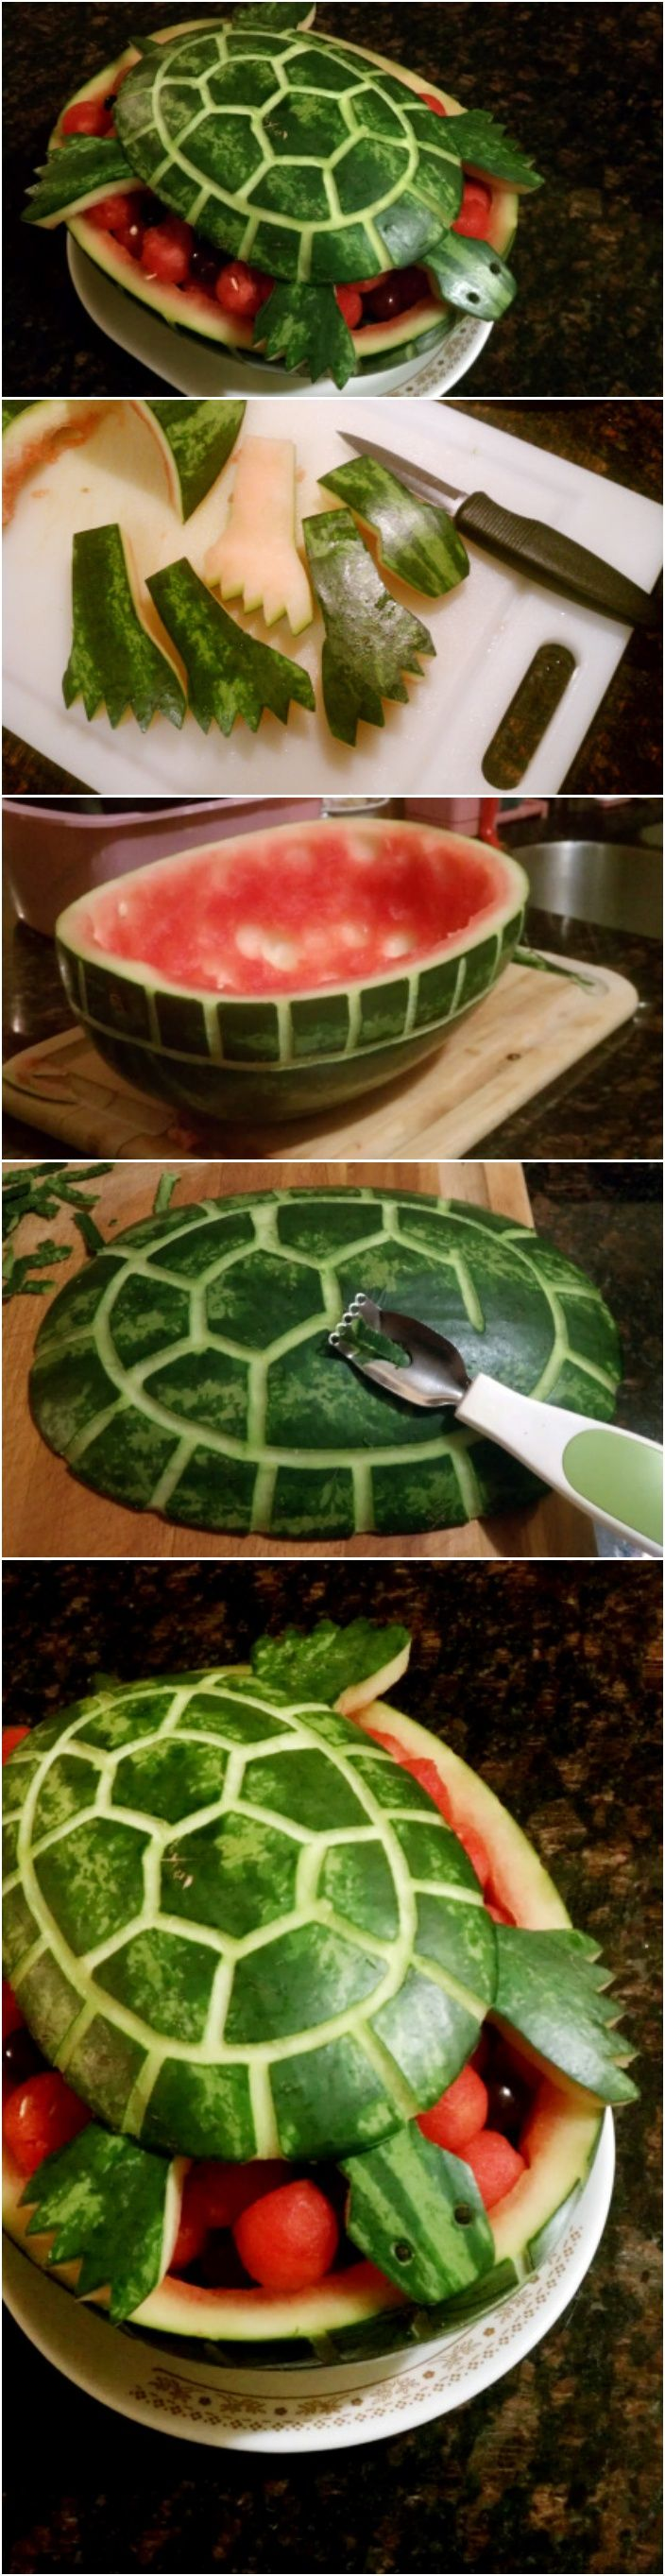 Vegetable carving step by step procedure - 10 Watermelon Carving Ideas And Tutorials